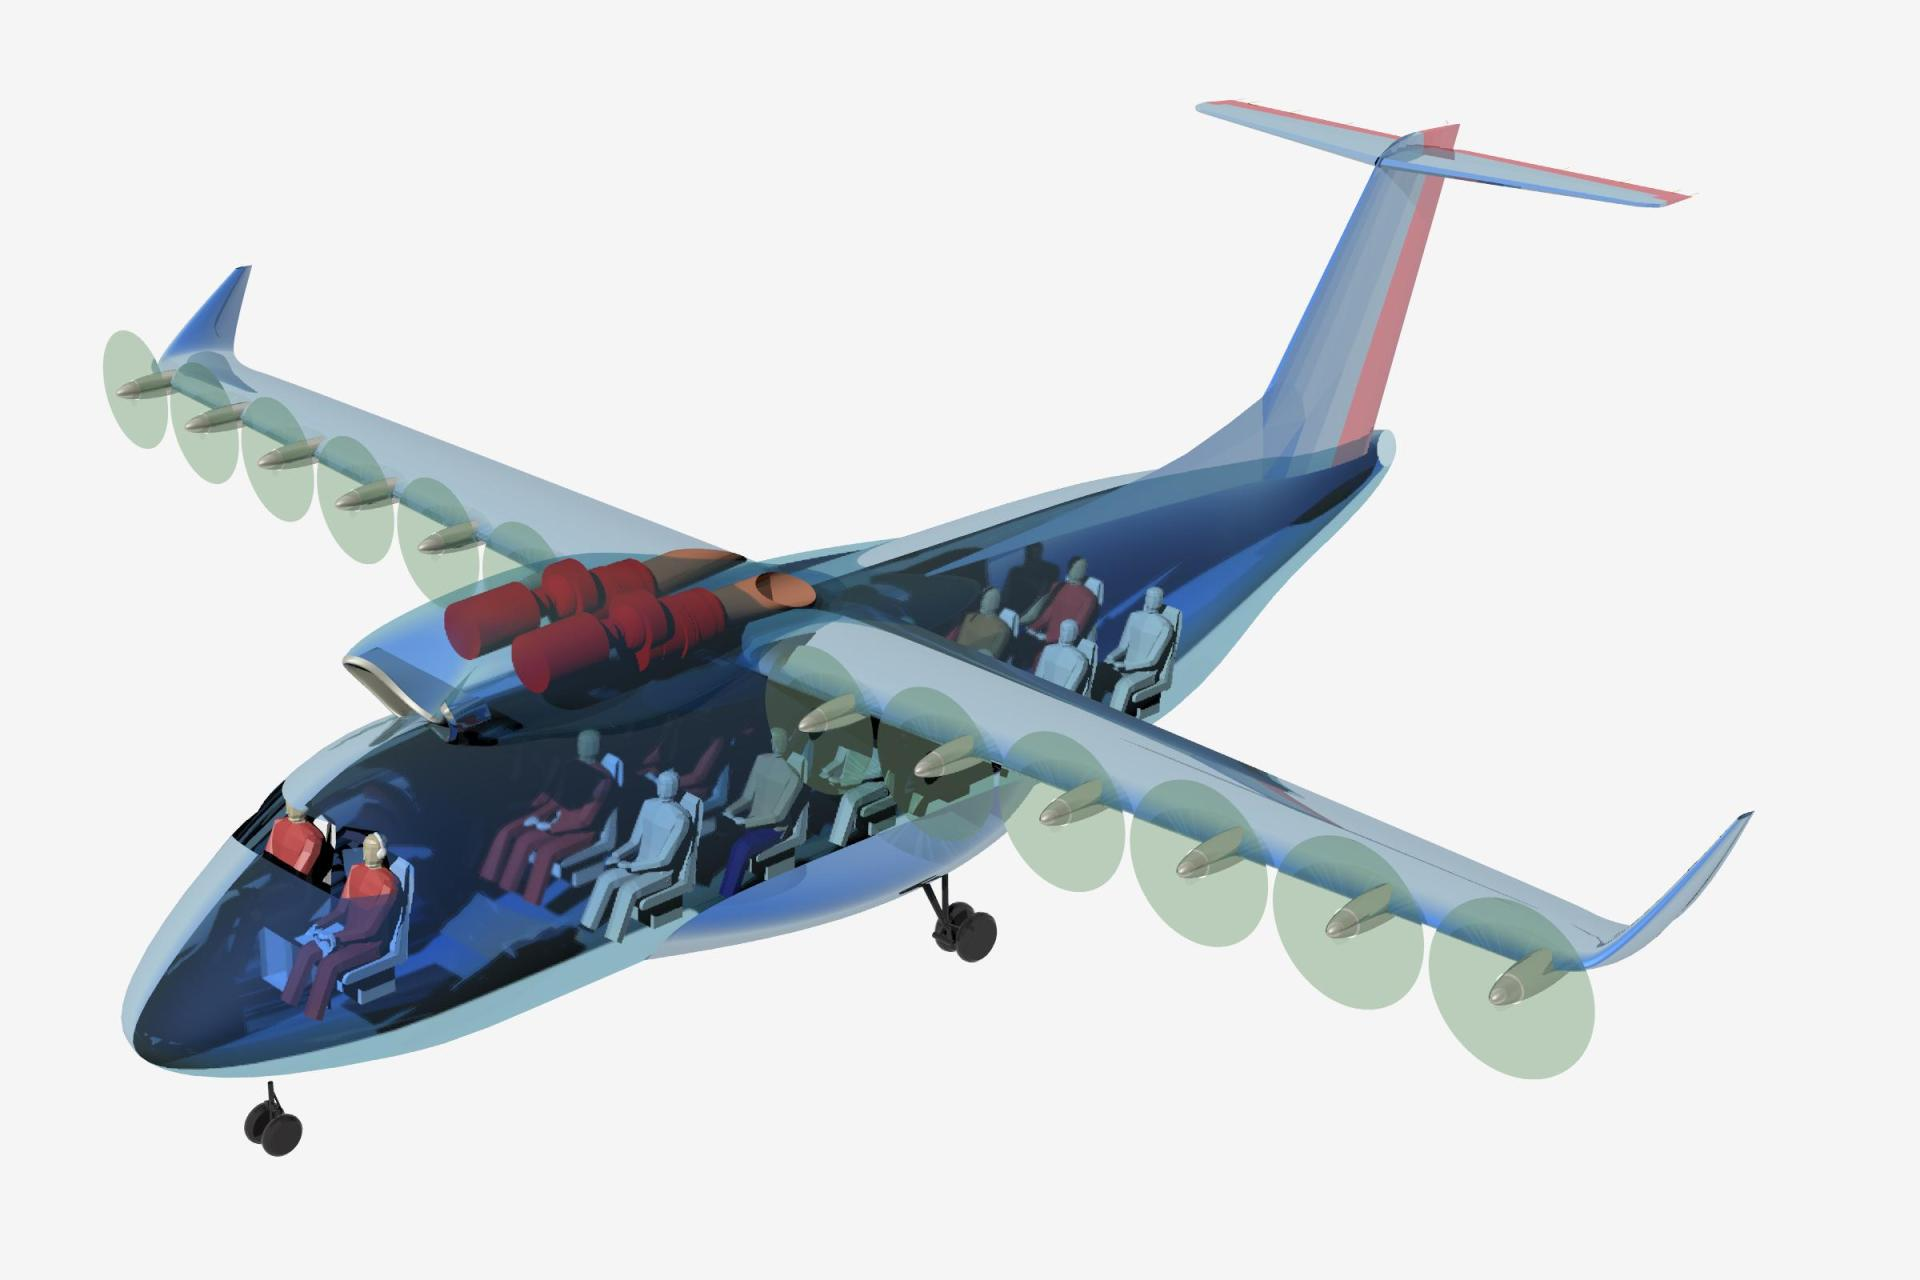 Nineteen-seater aircraft with distributed, electrically driven propellers